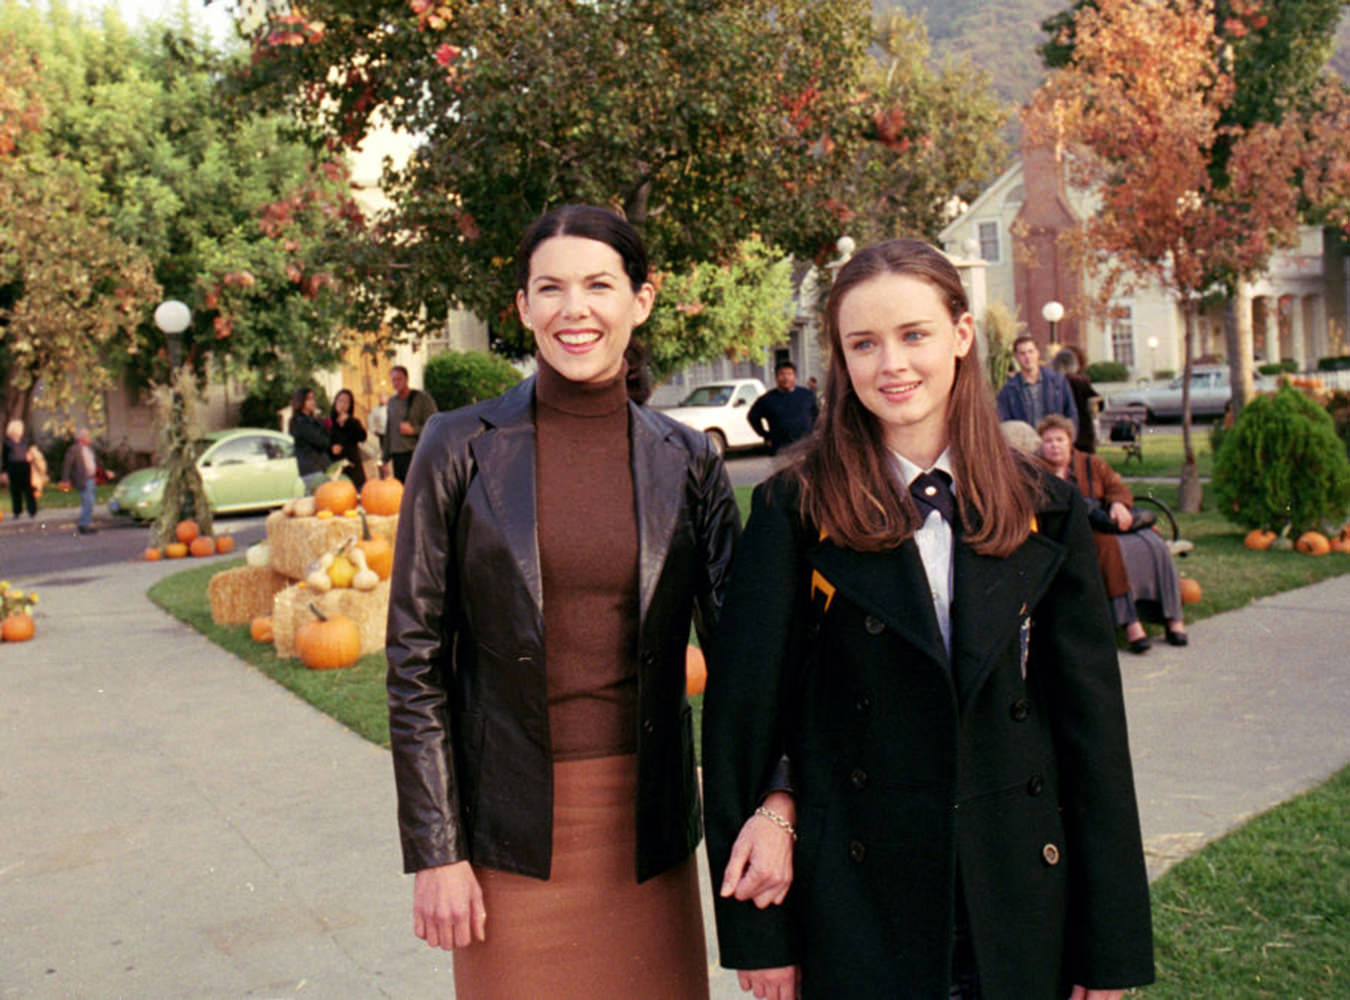 Blog-Mode-And-The-City-Cinq-Petites-Choses-189-Gilmore-Girls